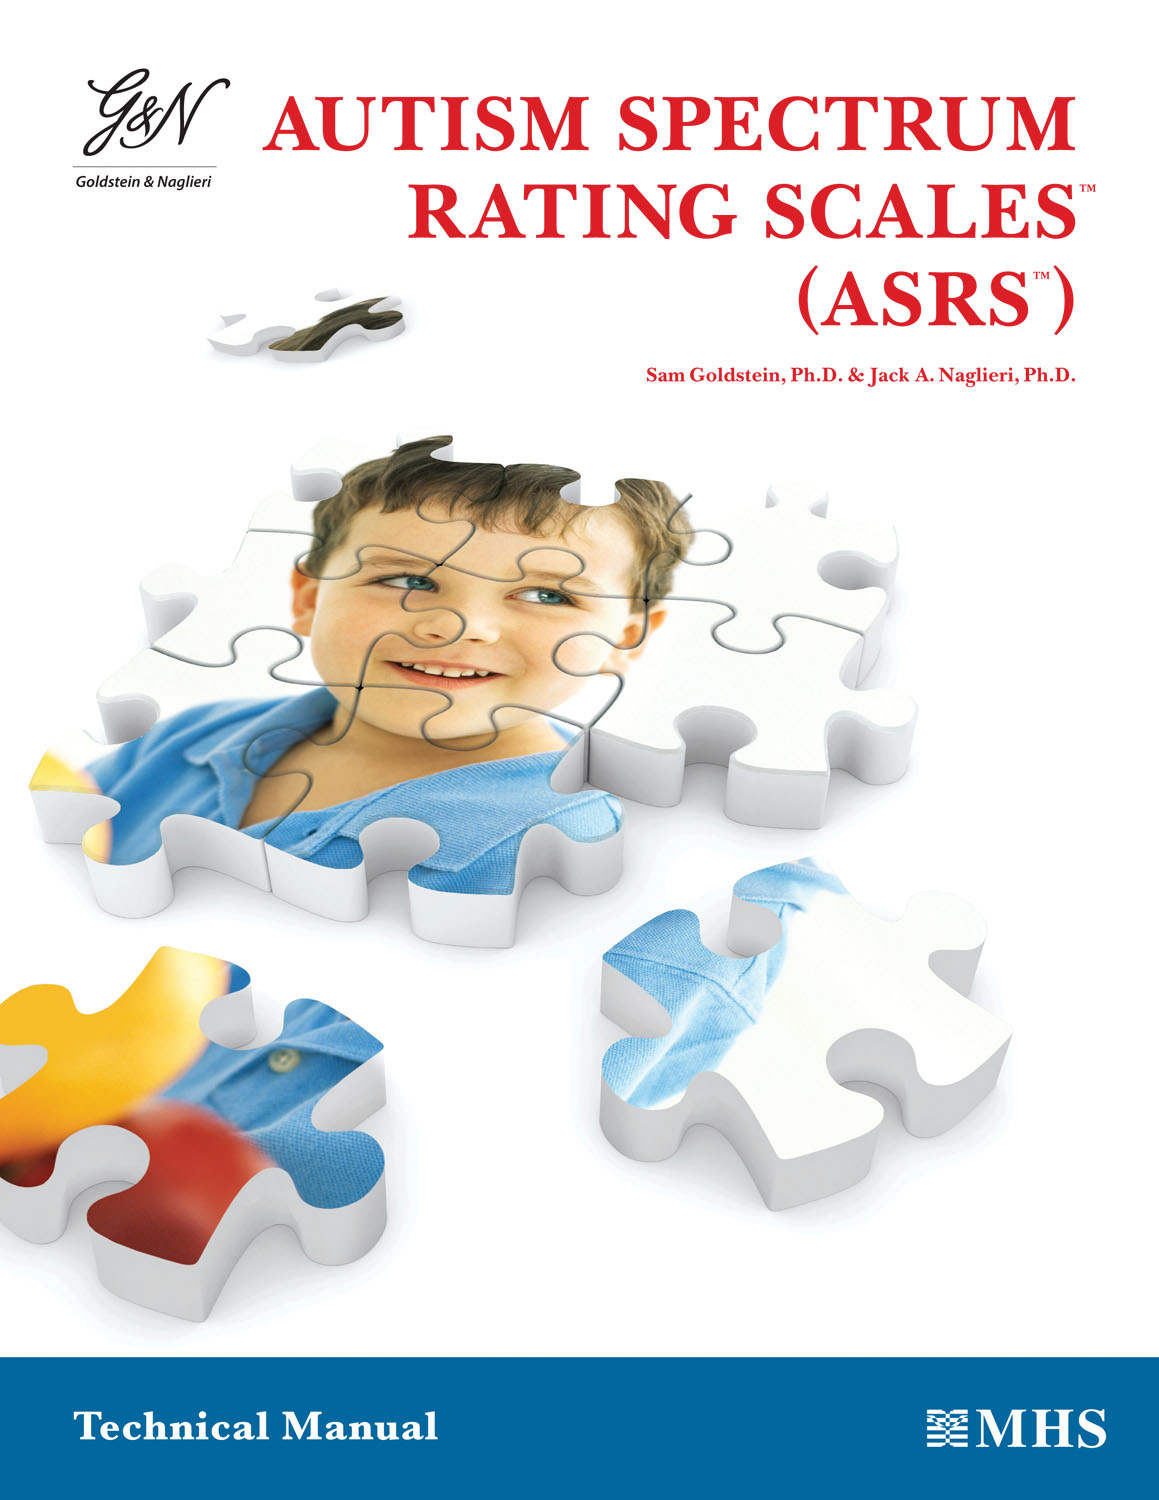 Autism Spectrum Rating Scales - ASRS